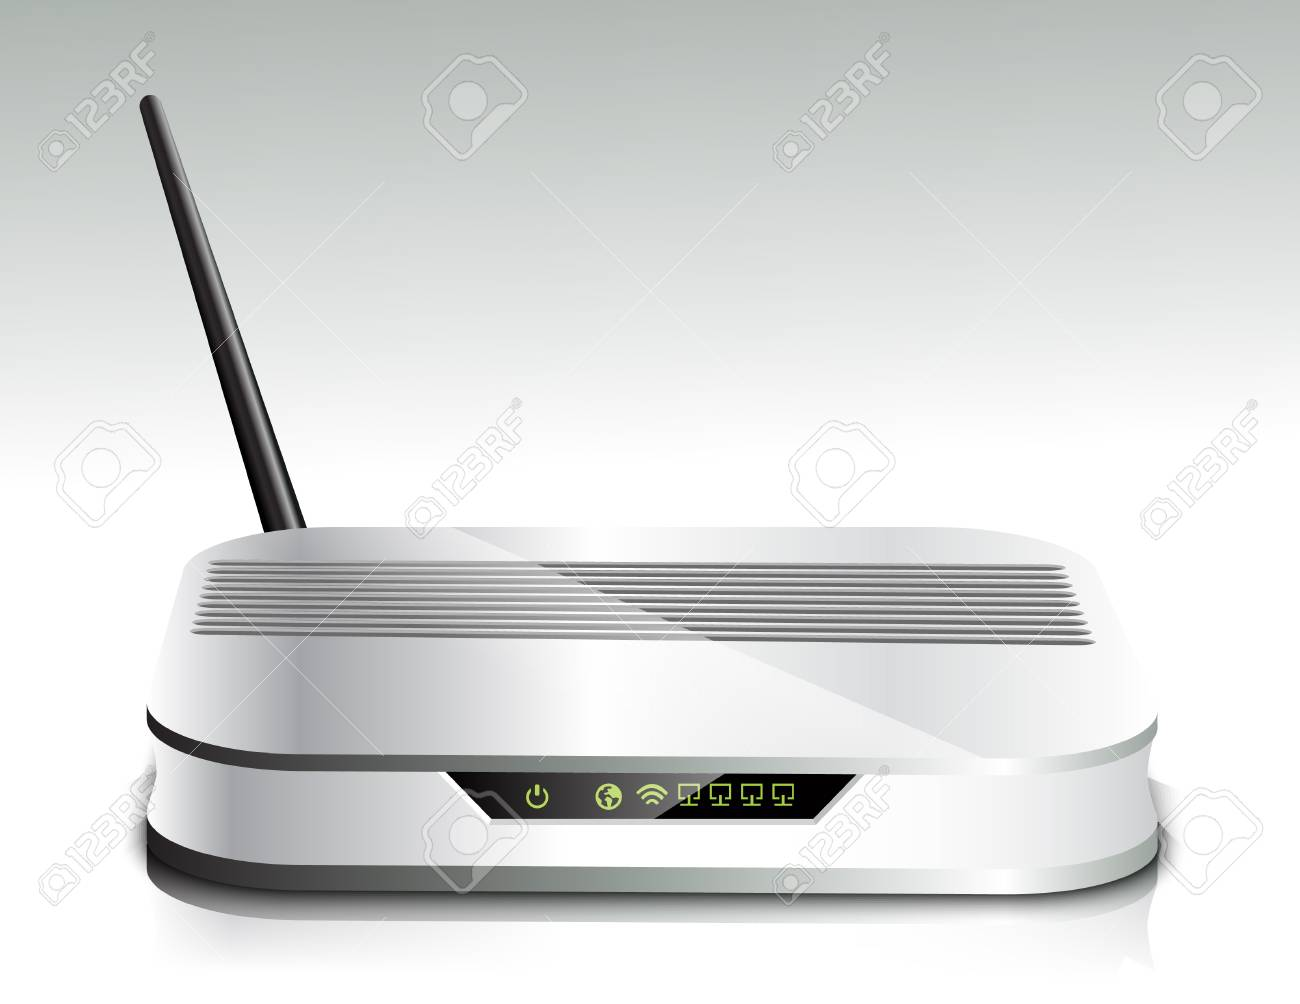 Wireless router Stock Vector - 18929784